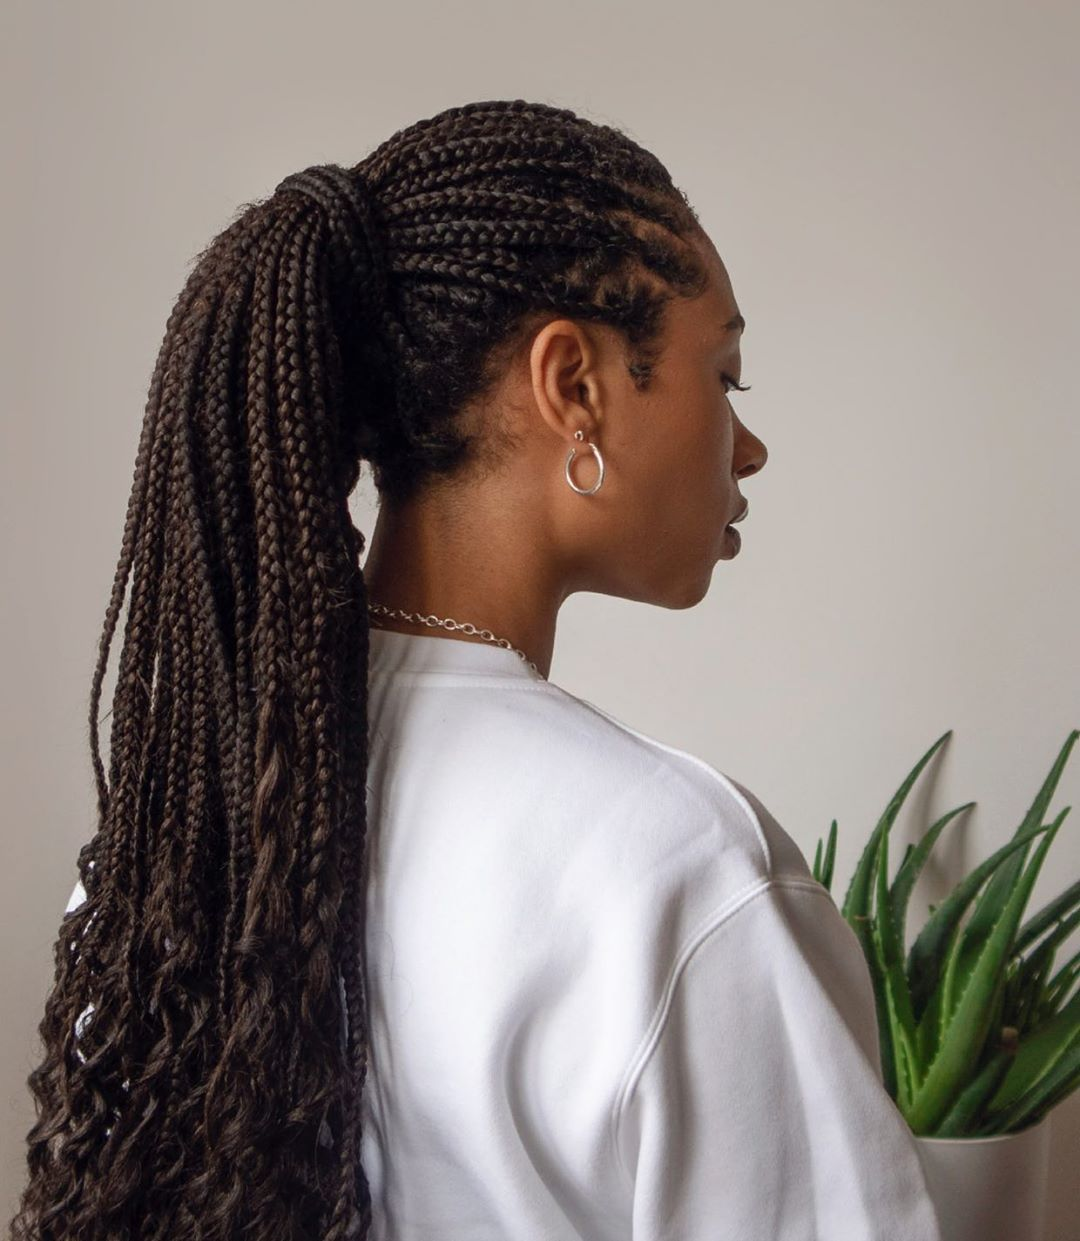 16 Protective Styles To Help Your Natural Hair Grow Longer ...